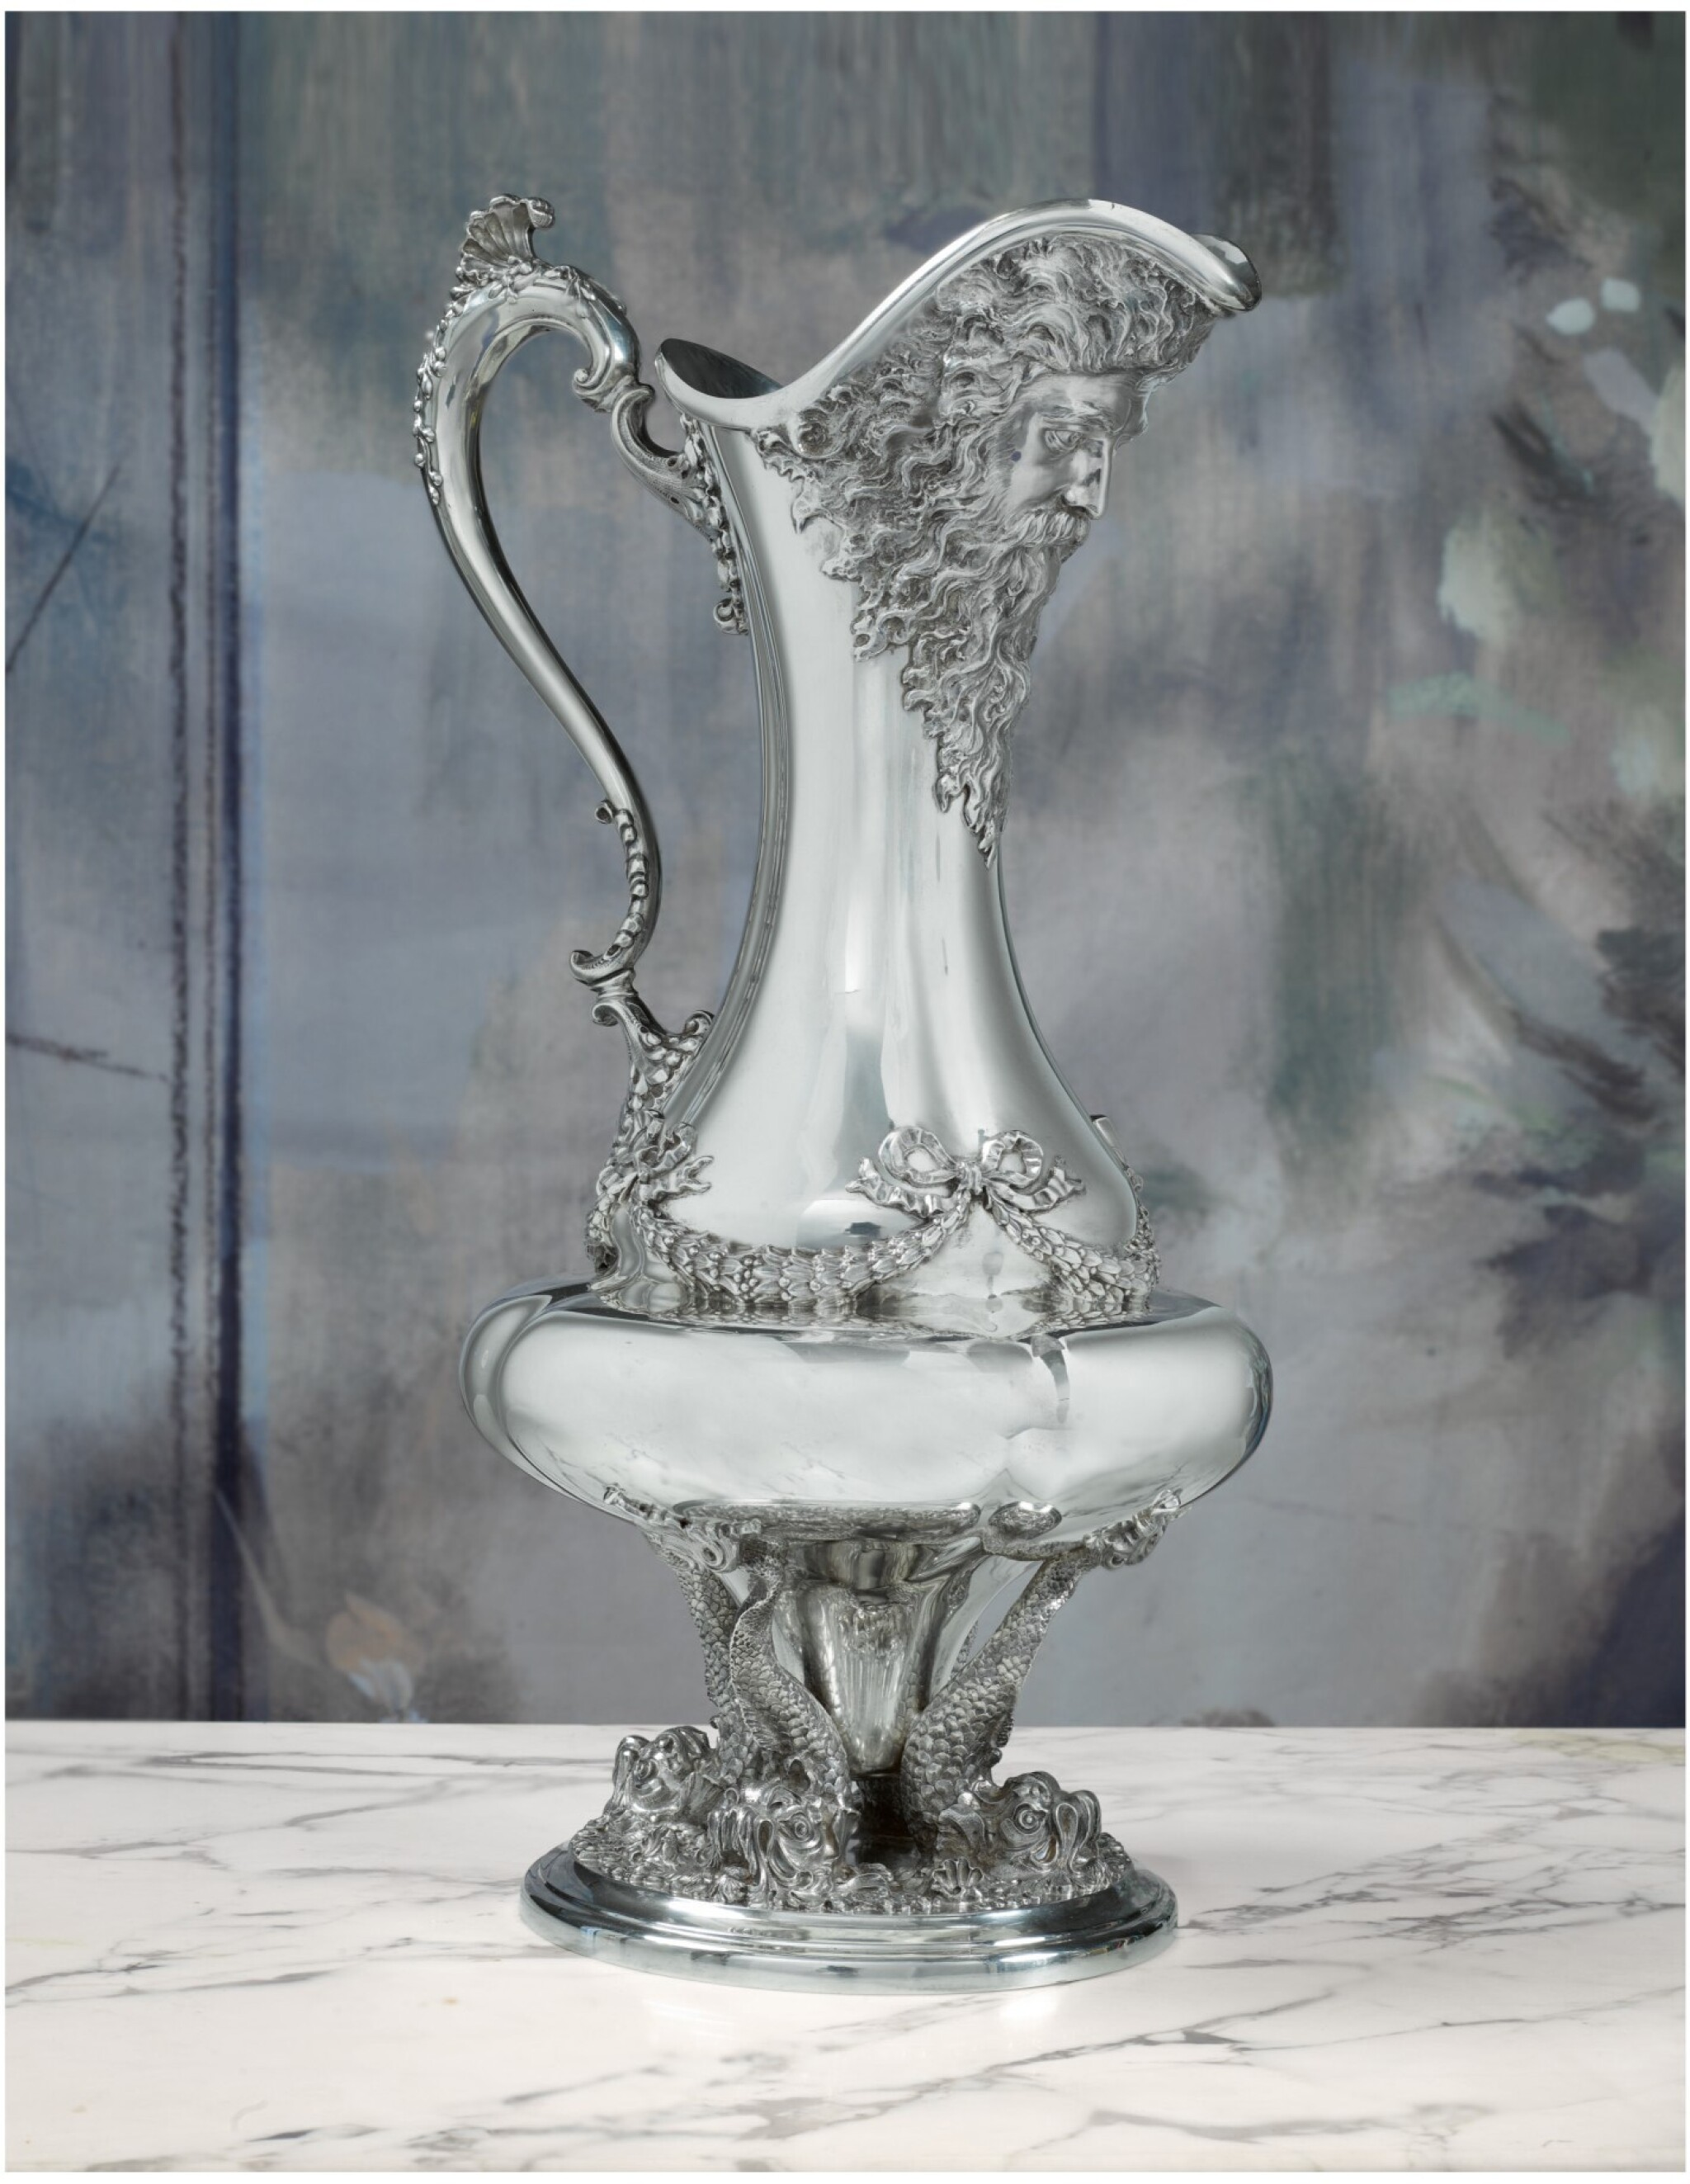 A LARGE AMERICAN SILVER EWER, BLACK STARR AND FROST, NEW YORK, CIRCA 1895